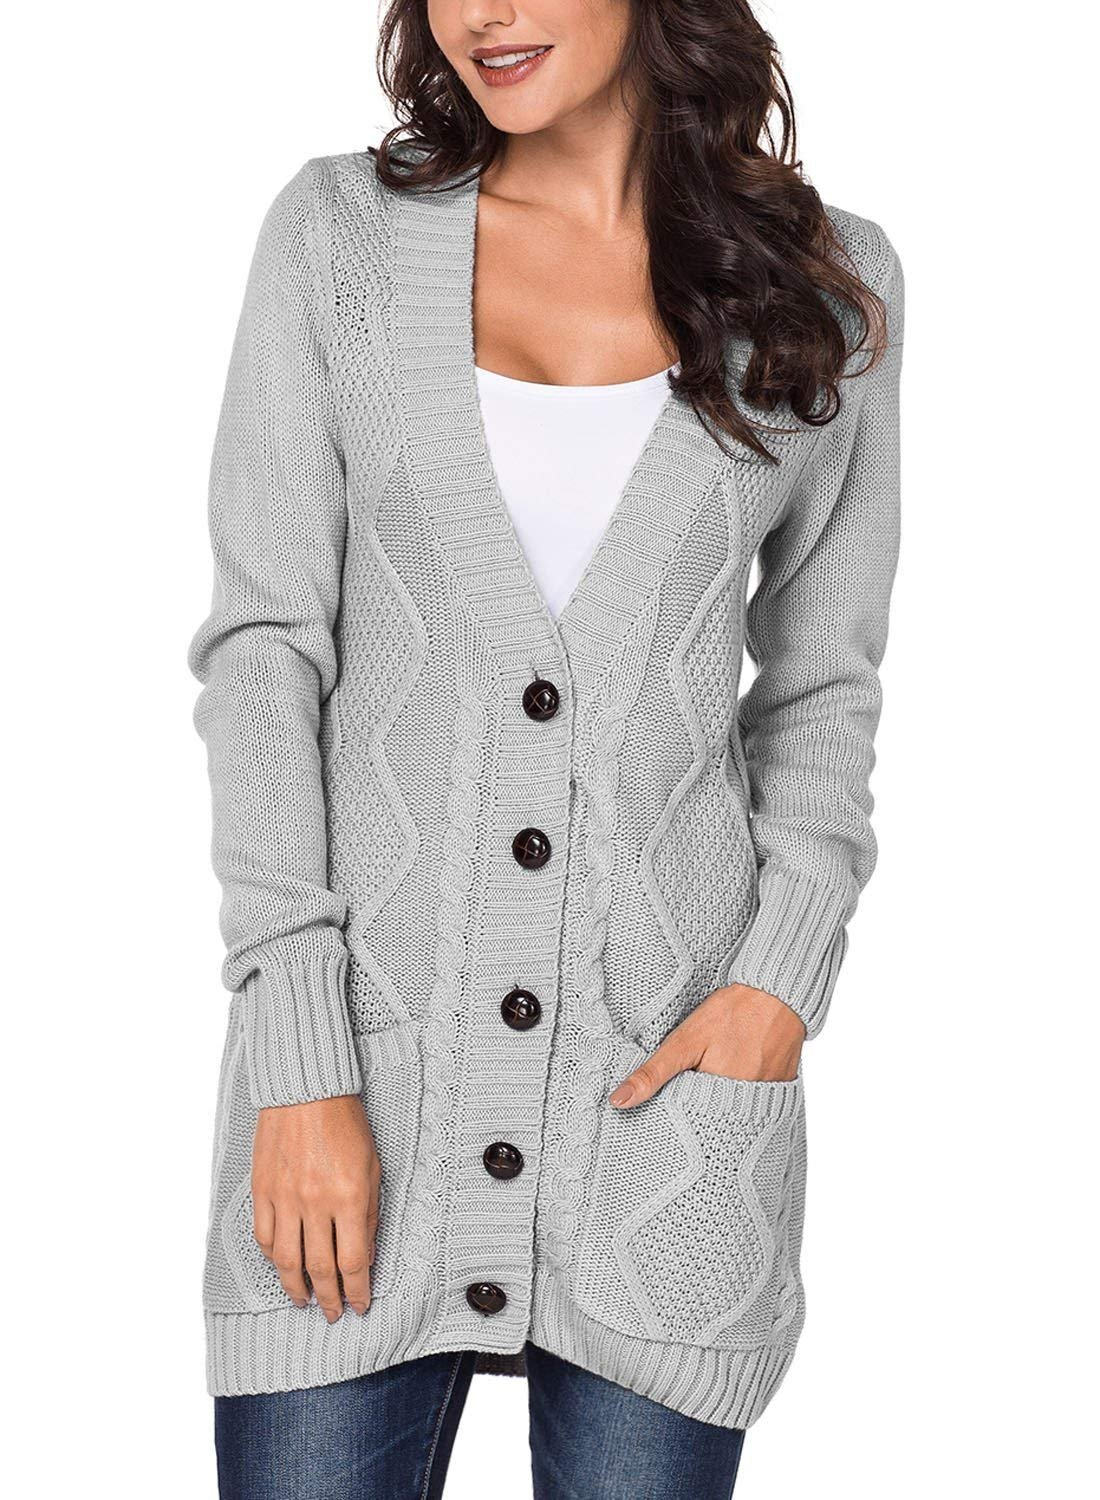 Womens Long Button Down Cardigan Sweaters Pockets Open Front Knit Chunky Outwear Coat